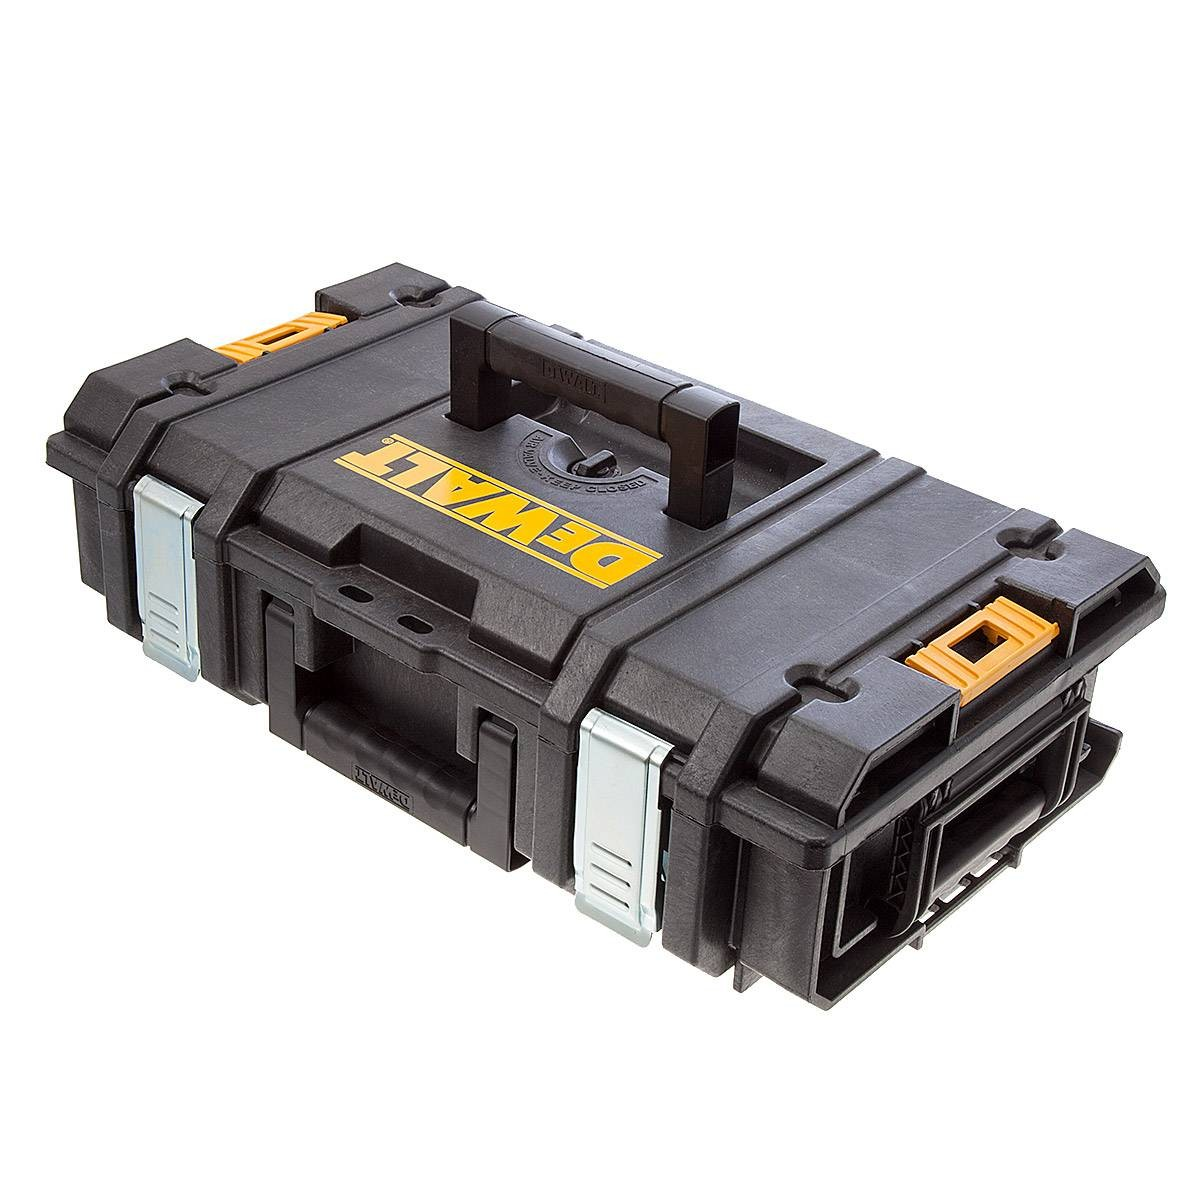 DeWalt DS150 XR TOUGHSYSTEM Kit Box (Moulded Inlay - DCK266P2)